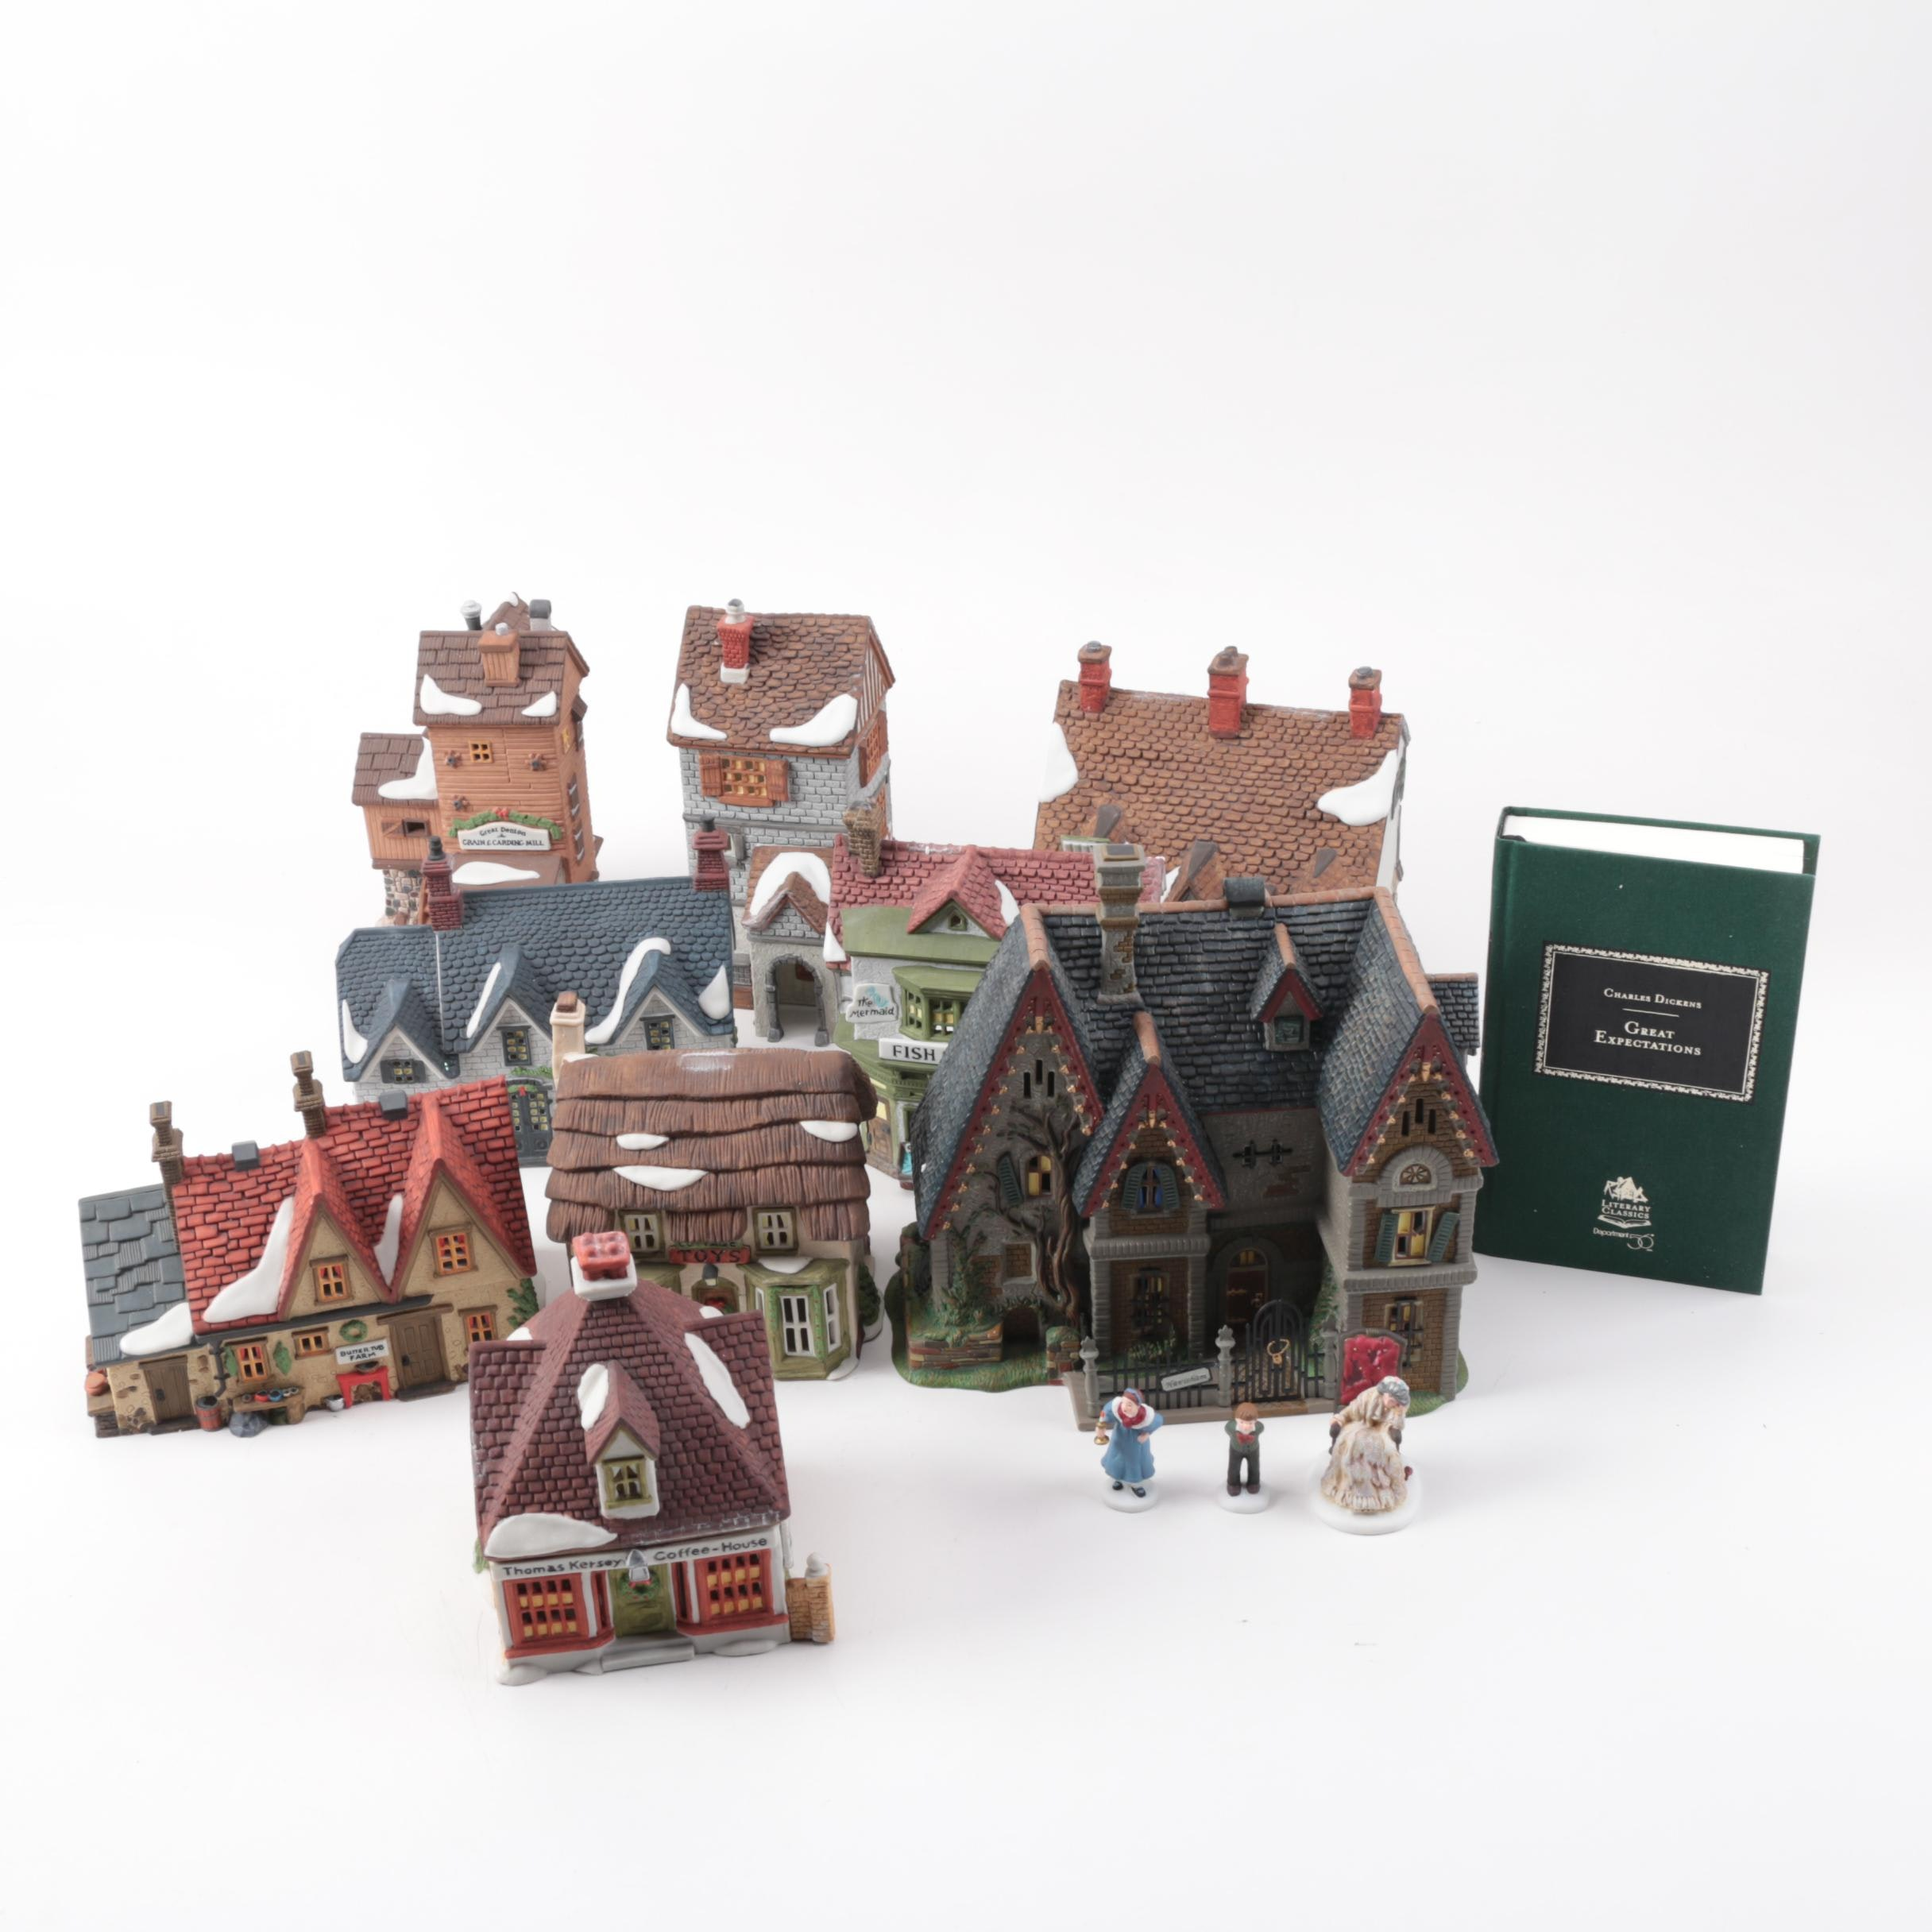 """Department 56 """"Dicken's Village Series"""" Buildings and """"Great Expectations"""" Book"""